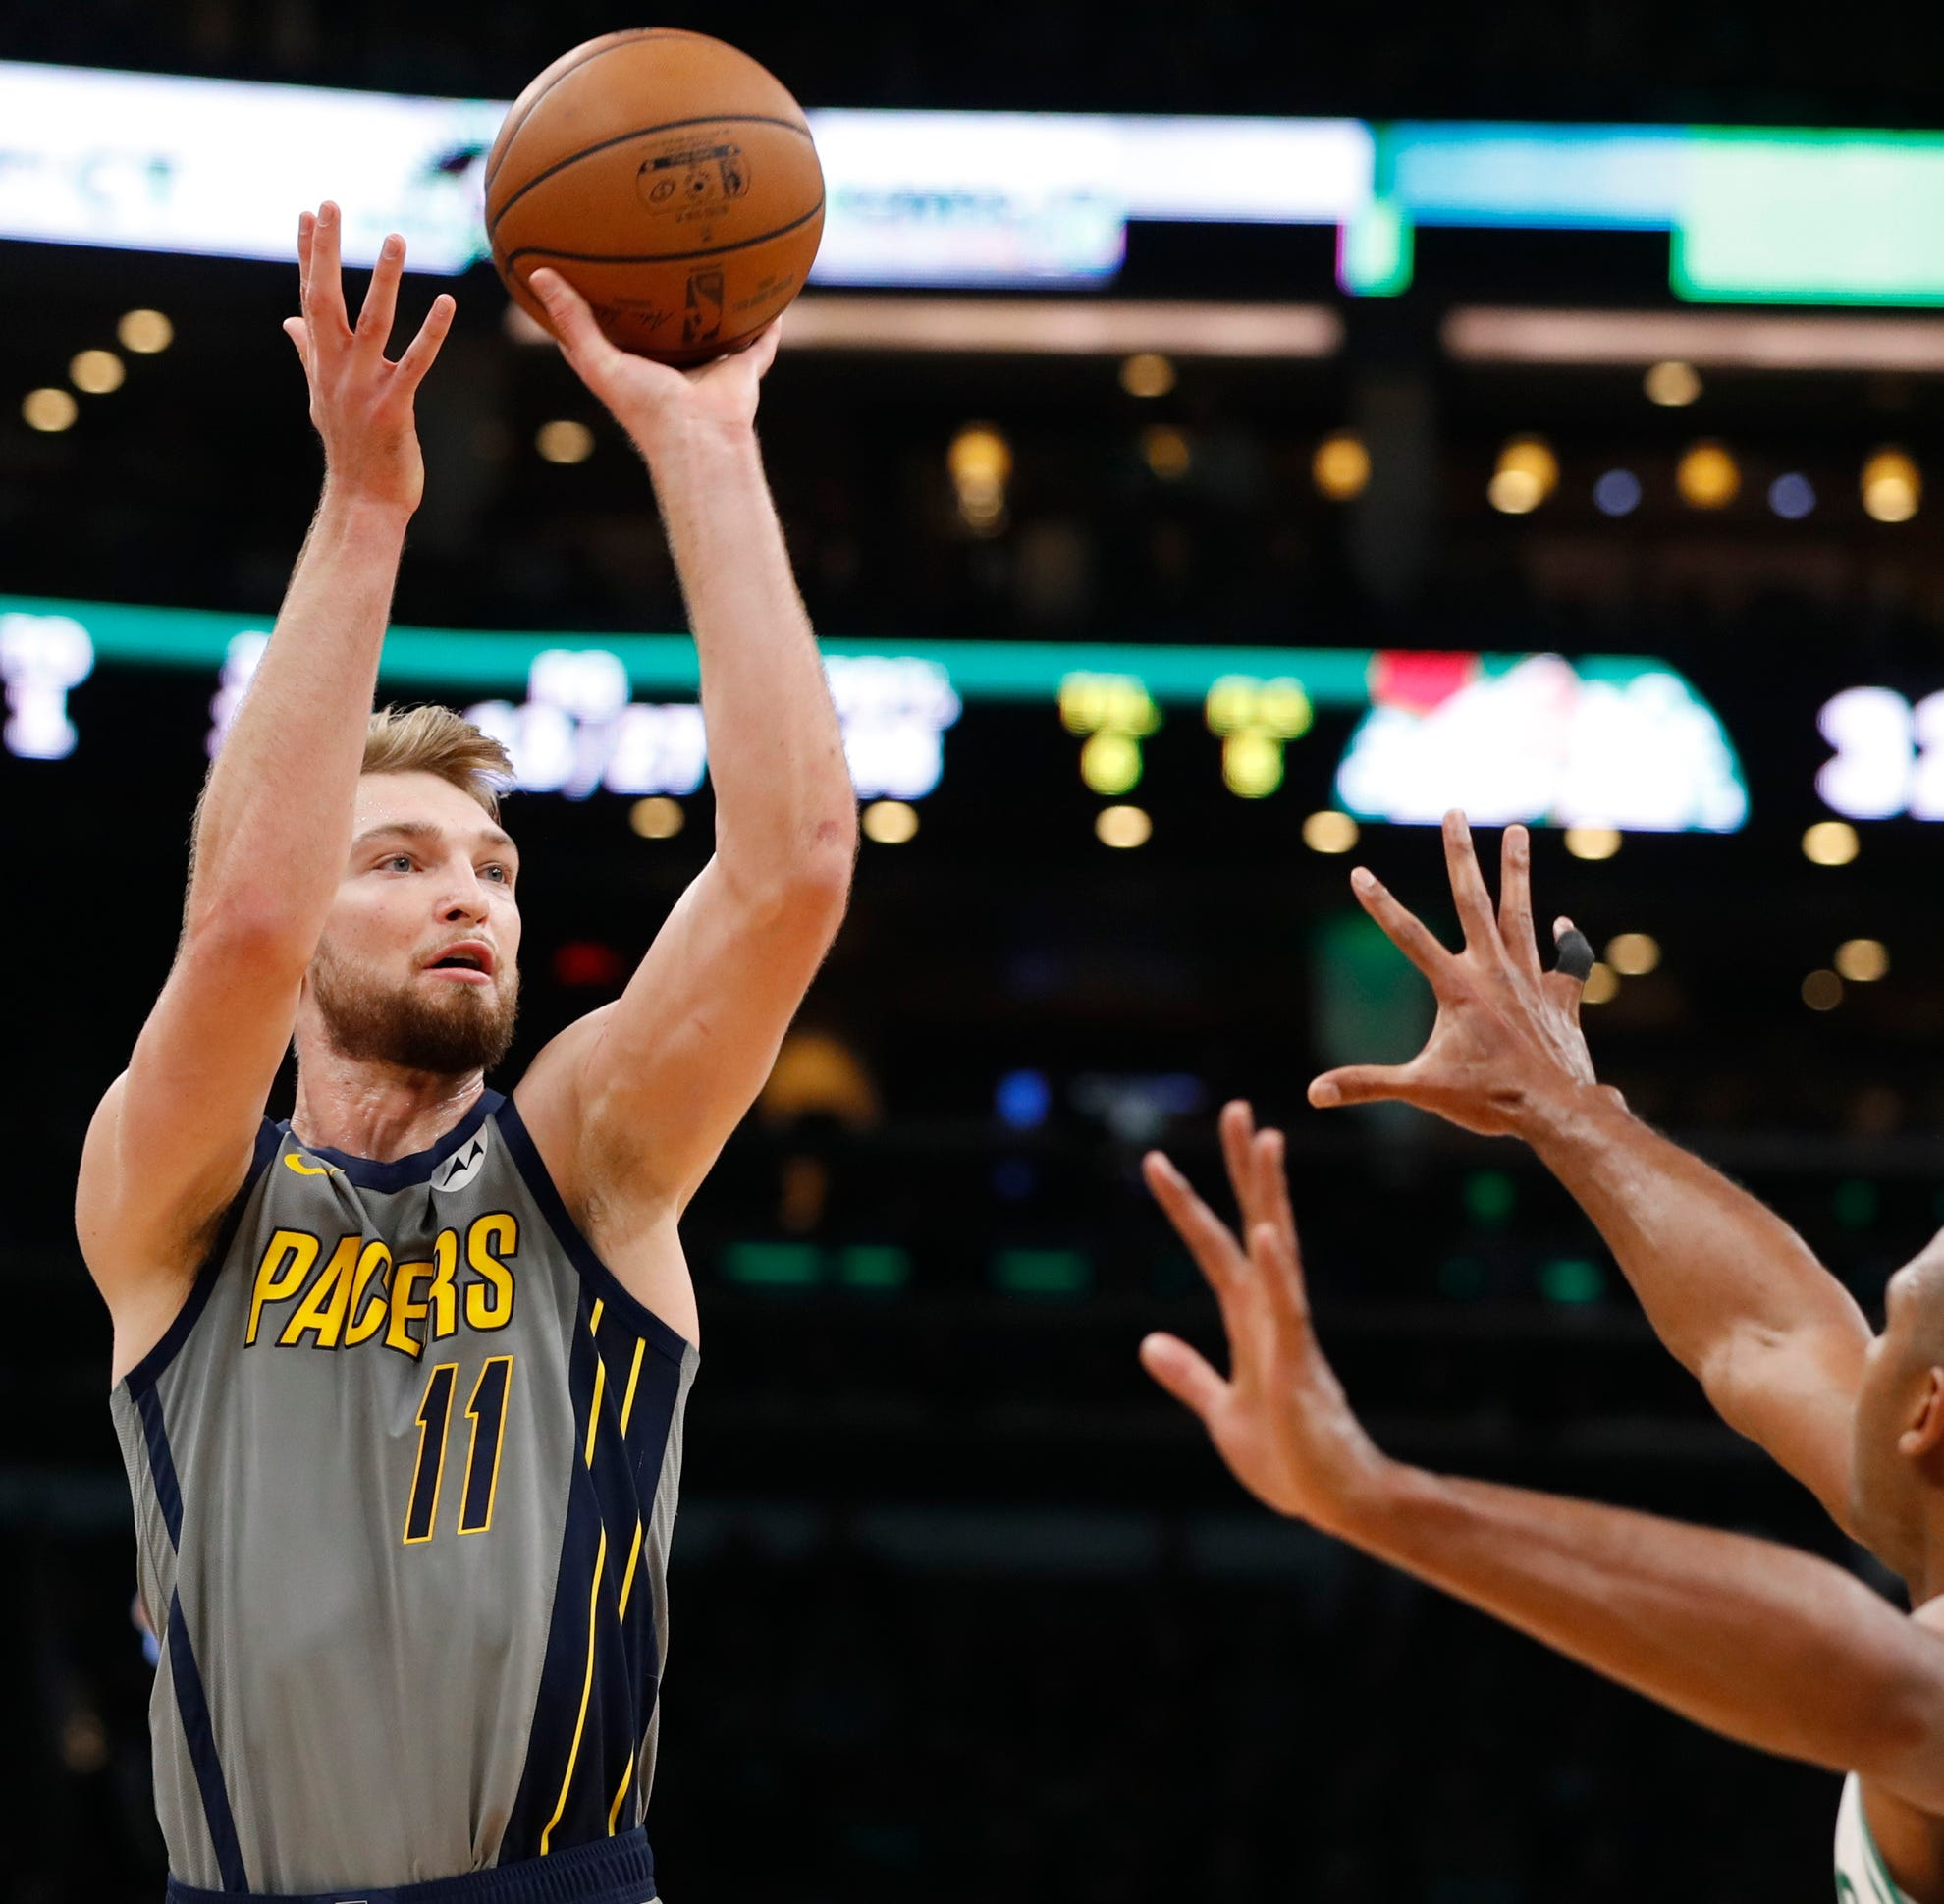 Domantas Sabonis wants a bigger role next year with Pacers. Kevin Pritchard says he'll have one